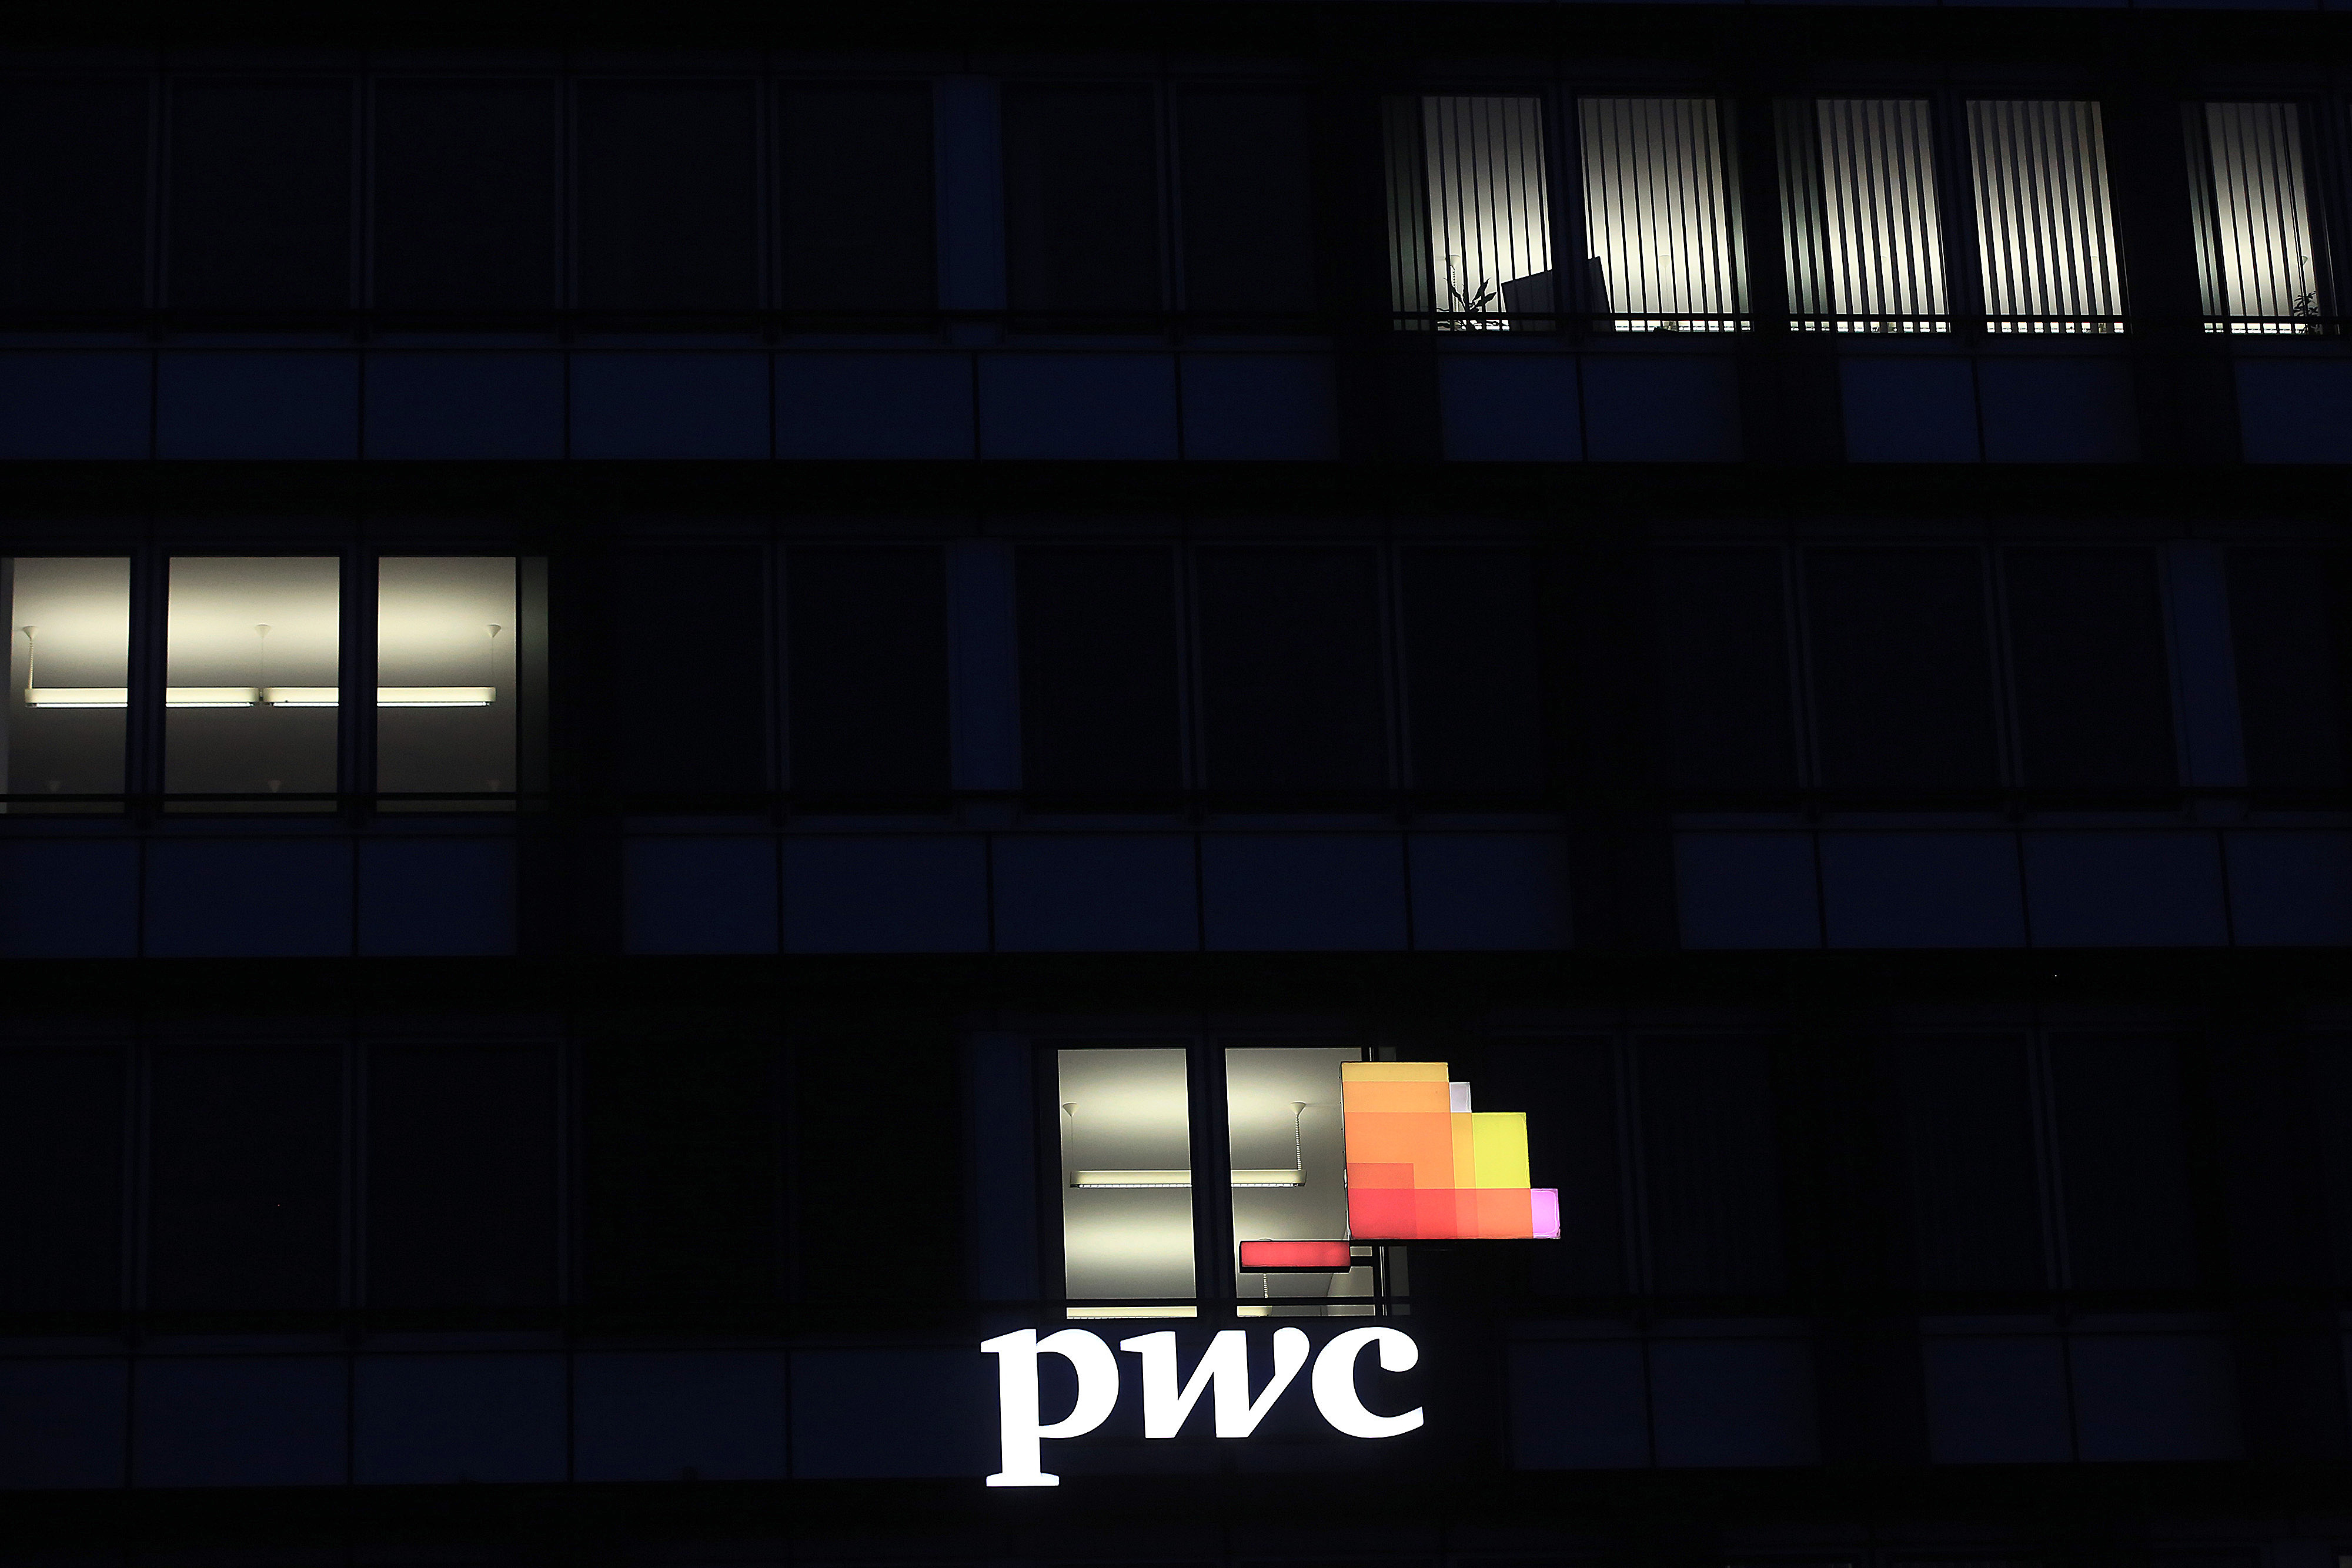 PwC Chairman Encourages Talks on Race After Dallas Shooting